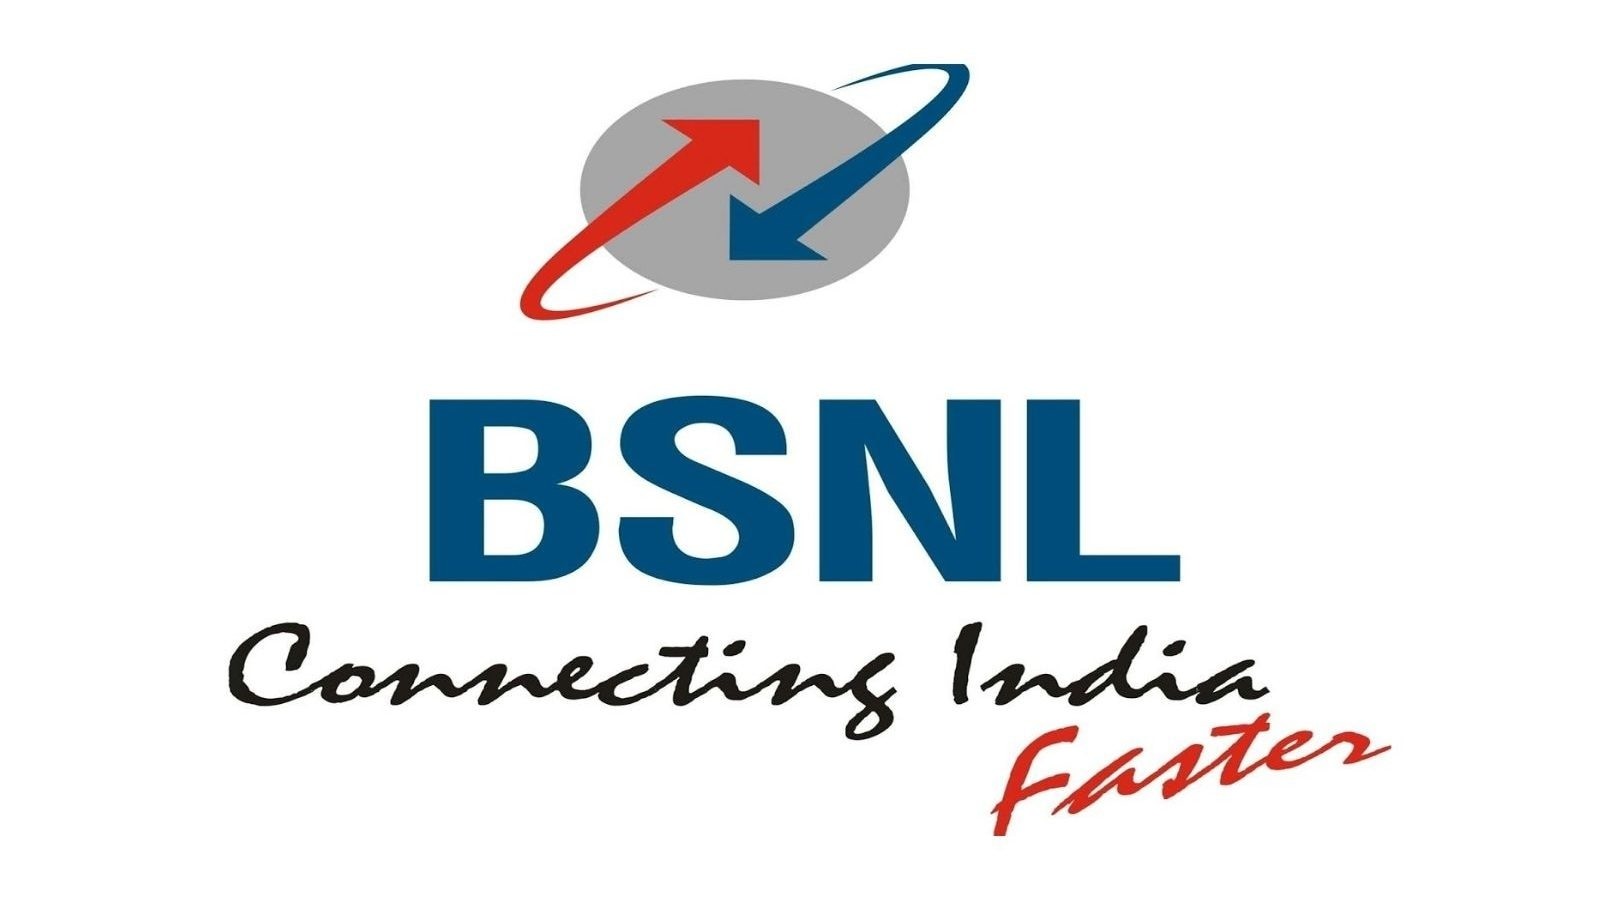 BSNL 4G Finally Rolling Out? IT Minister Makes First 4G Call Over Indian 4G Network